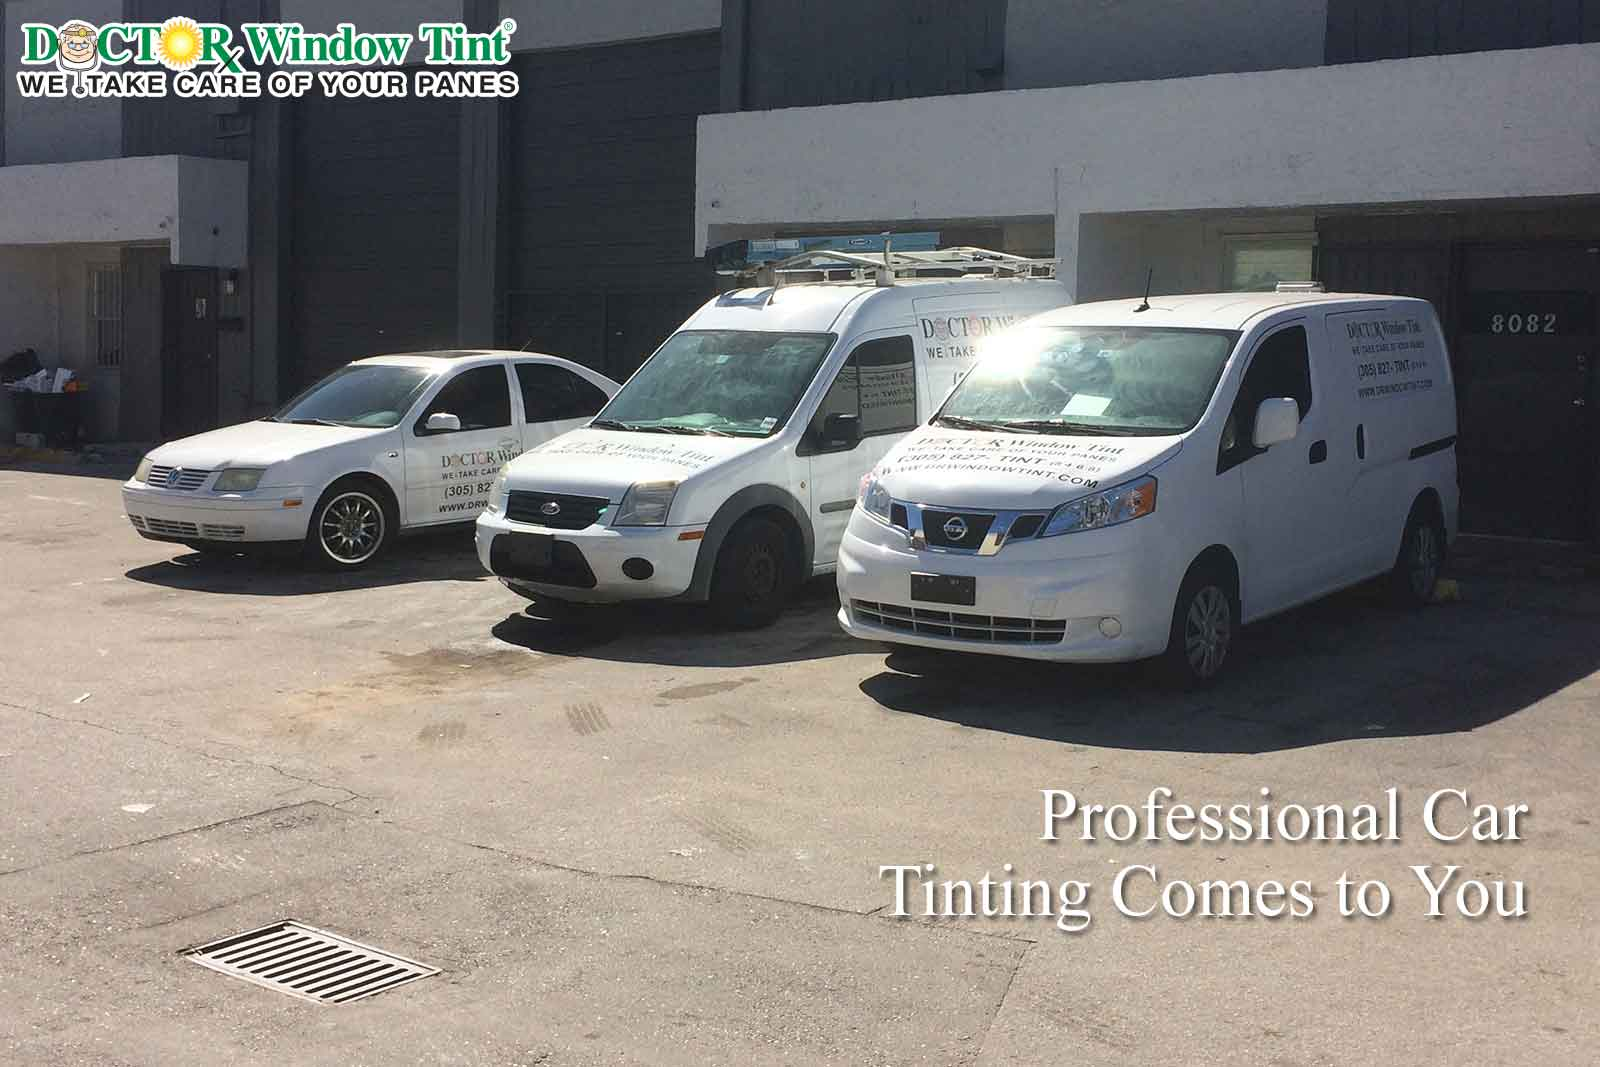 Professional Car Tinting